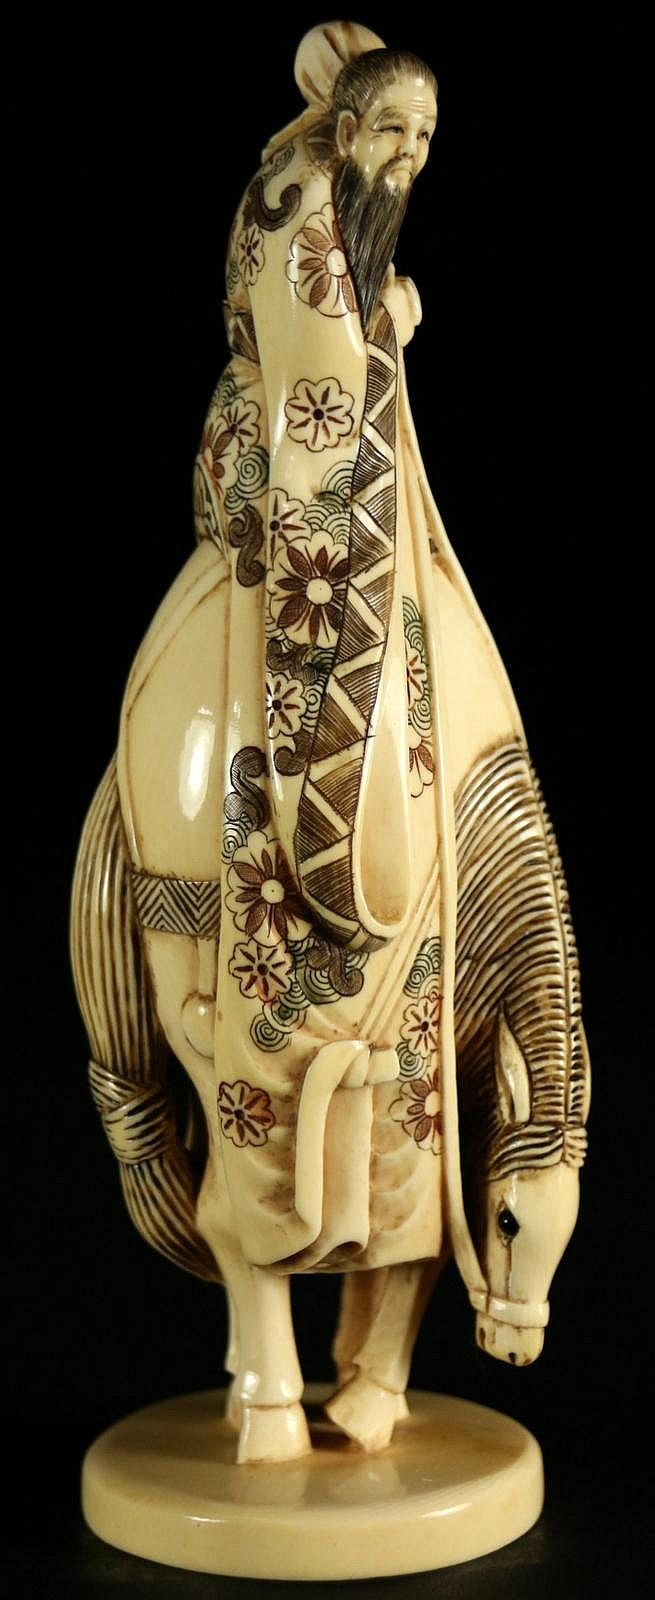 Ivory, Wise man on Horse, Japanese C. 1920 -  Sculpture of a man on horseback, this is a well detailed carving of a man in elaborately embroidered robes riding a horse. The horse holds his neck and head down low. Signature is on the bottom of the piece